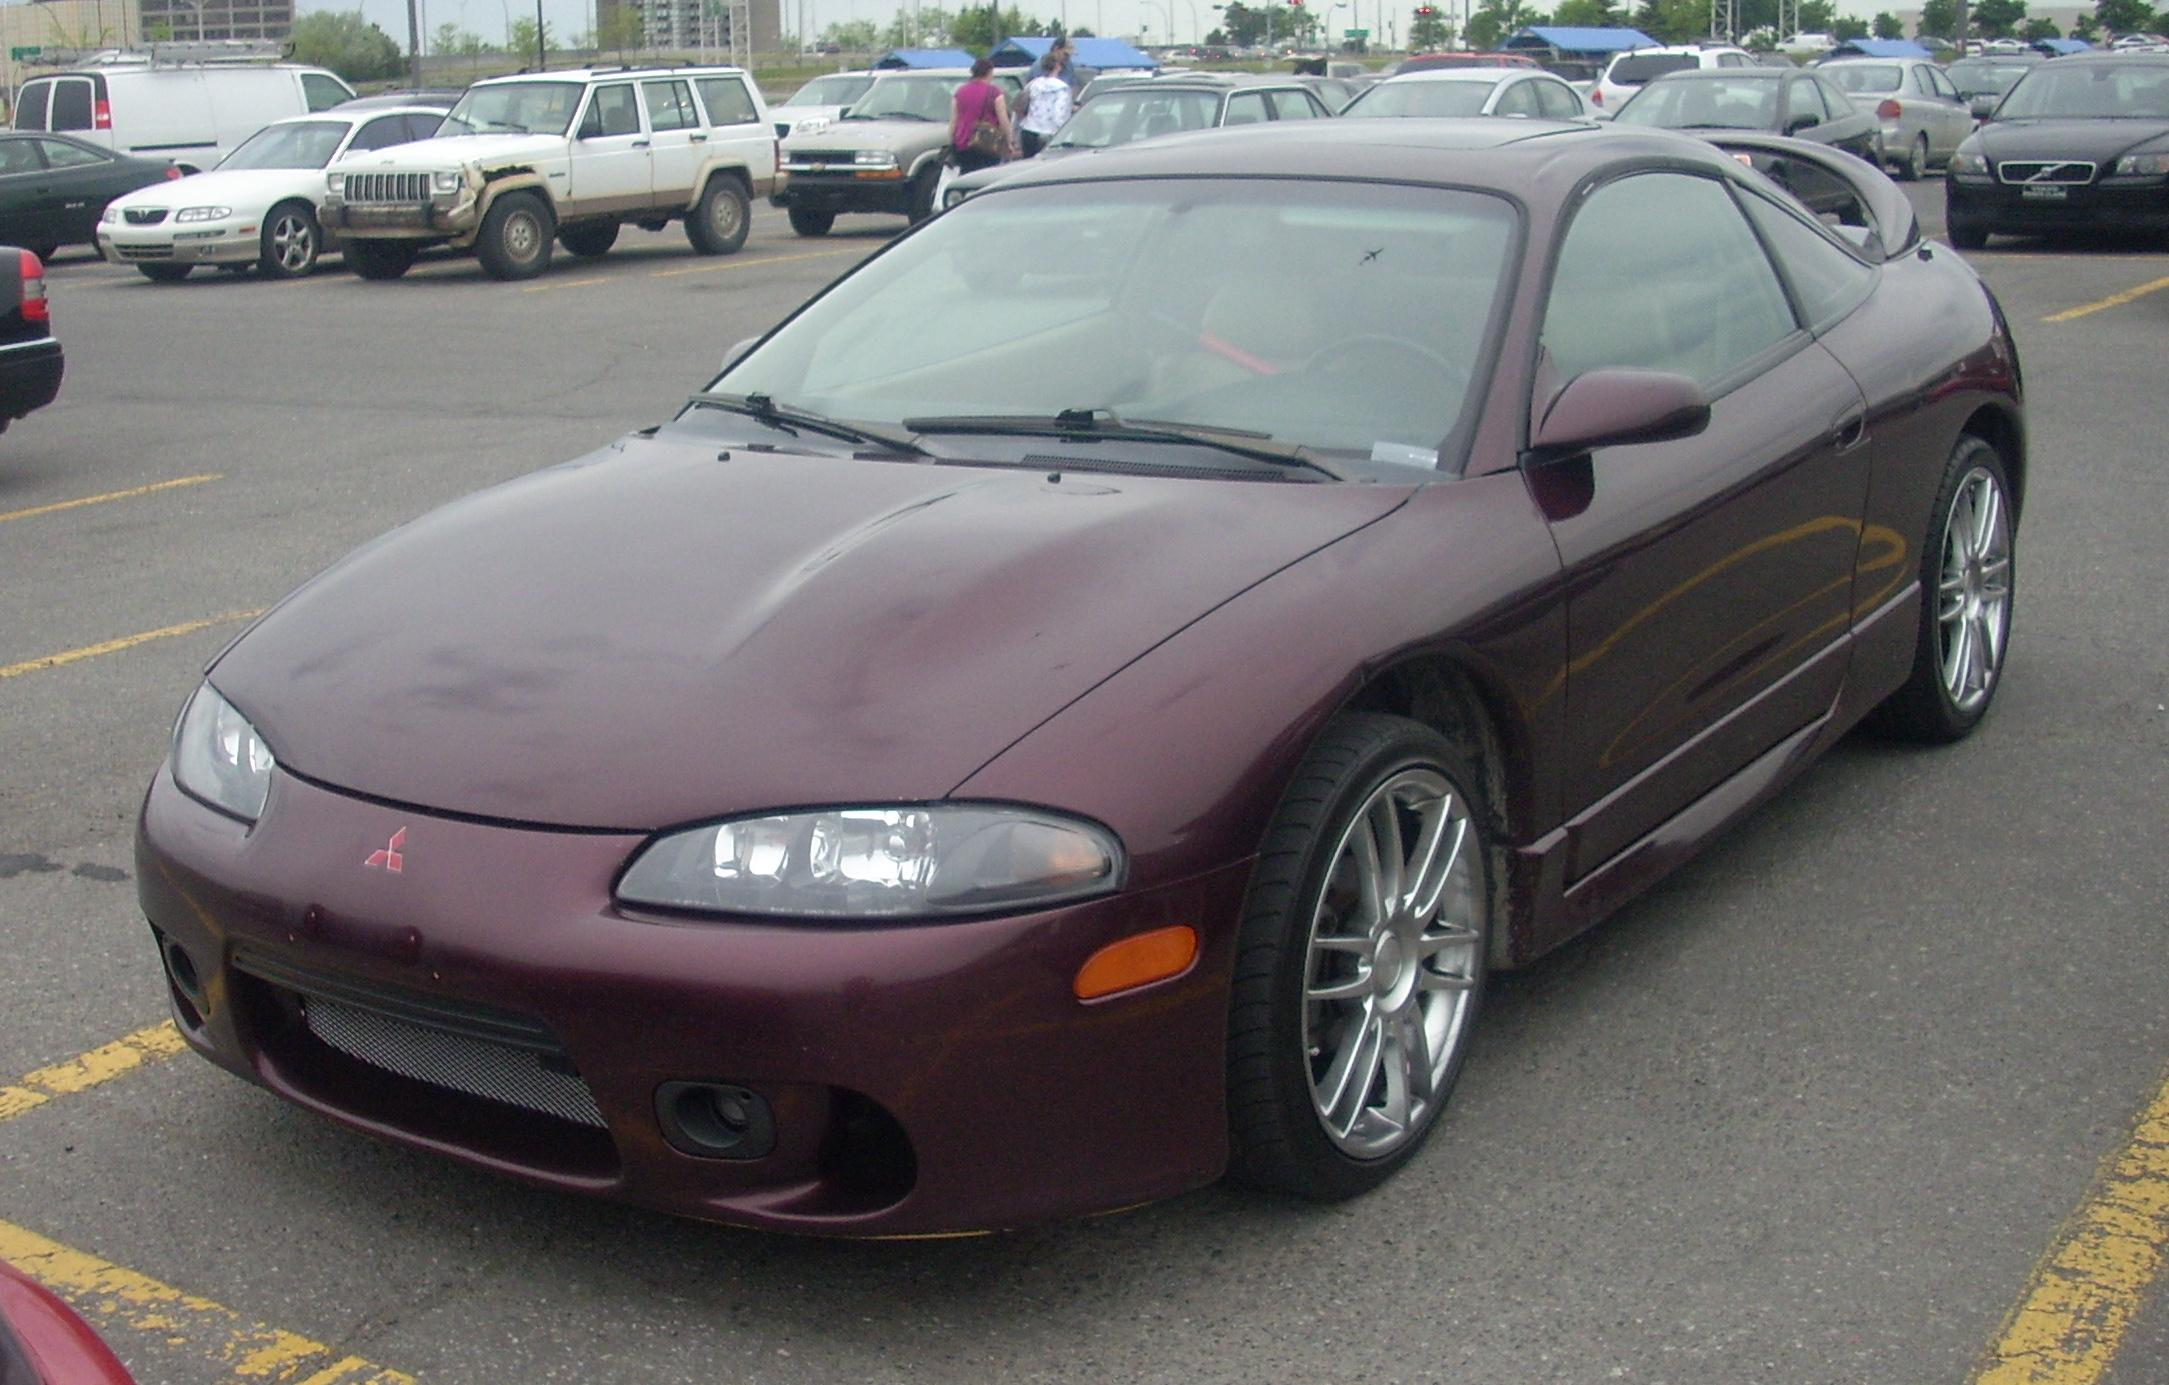 file:'97-'99 mitsubishi eclipse liftback - wikimedia commons